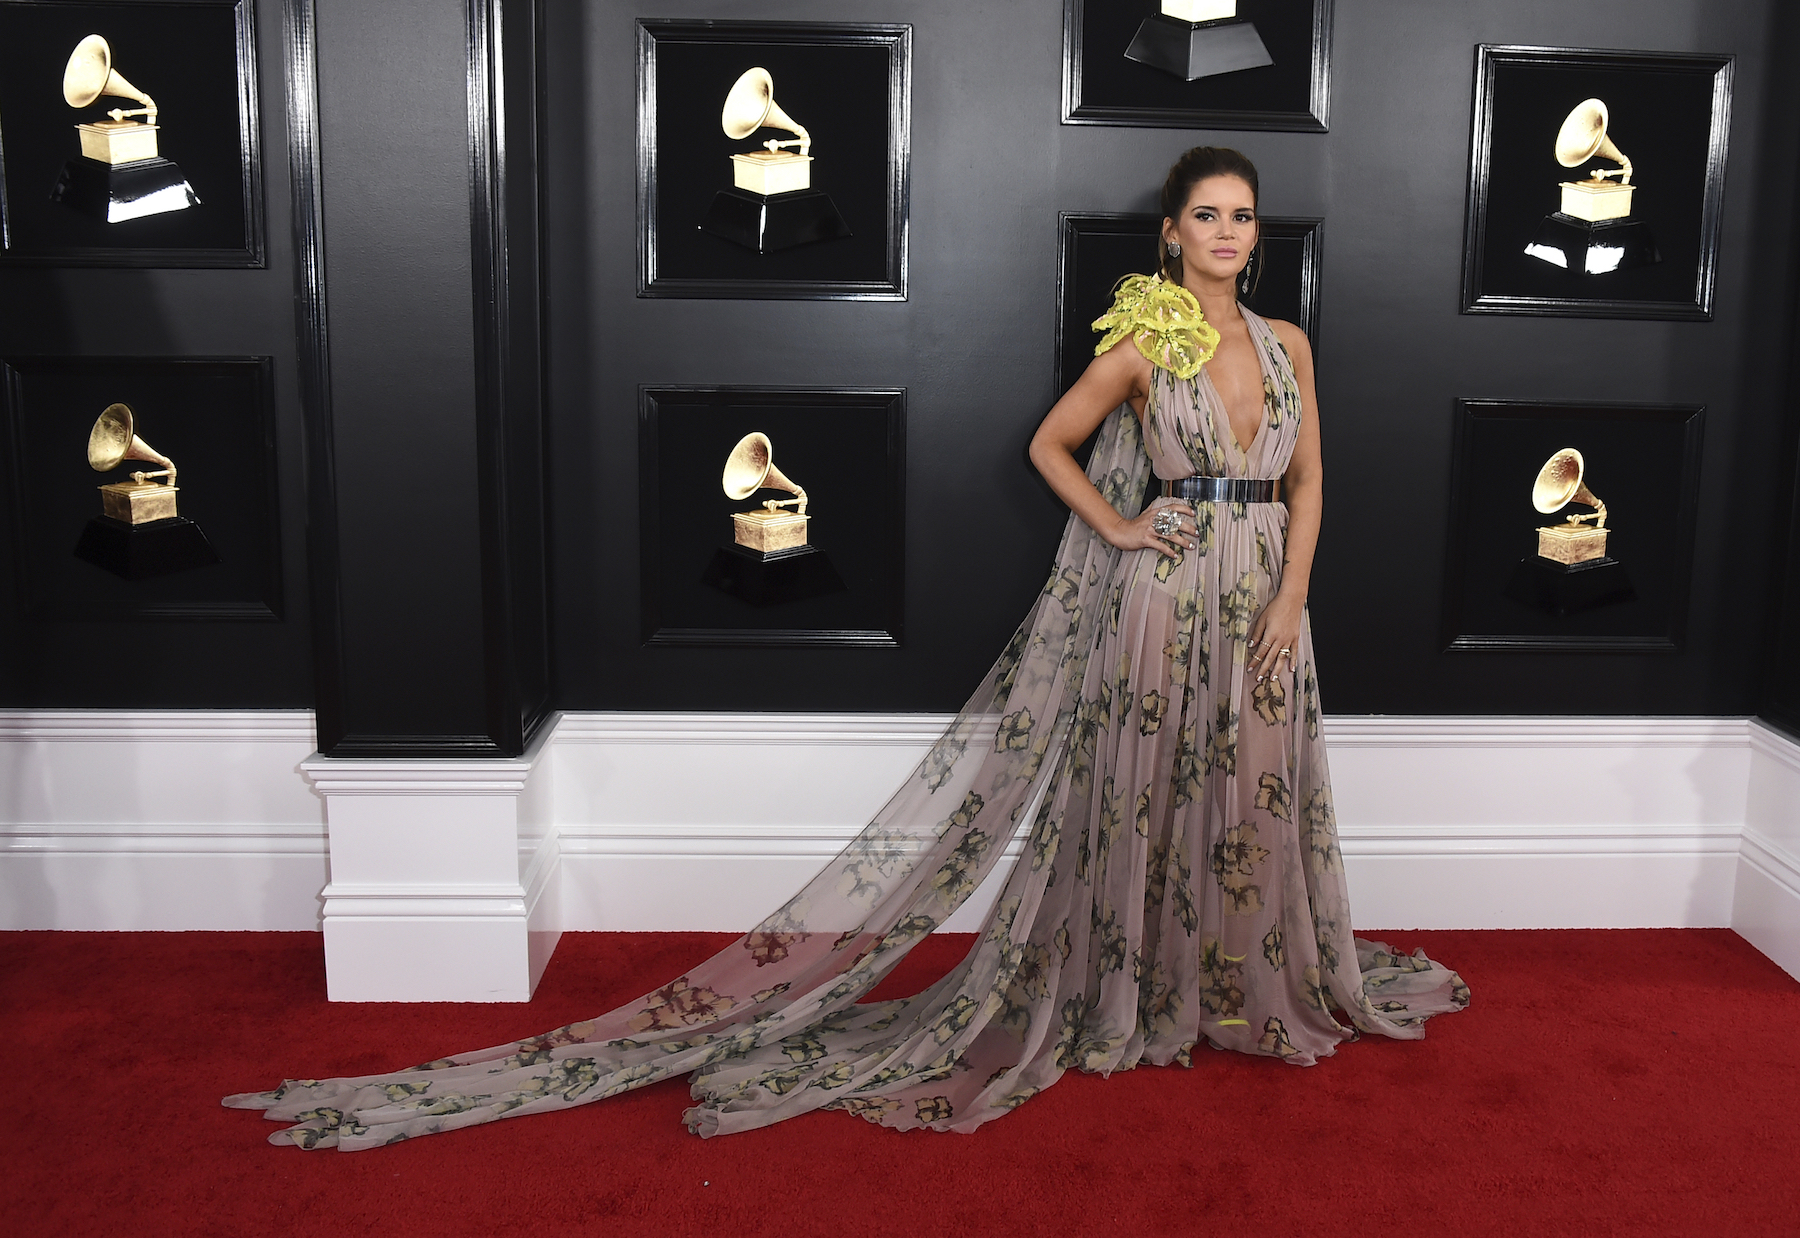 <div class='meta'><div class='origin-logo' data-origin='AP'></div><span class='caption-text' data-credit='Jordan Strauss/Invision/AP'>Maren Morris arrives at the 61st annual Grammy Awards at the Staples Center on Sunday, Feb. 10, 2019, in Los Angeles.</span></div>